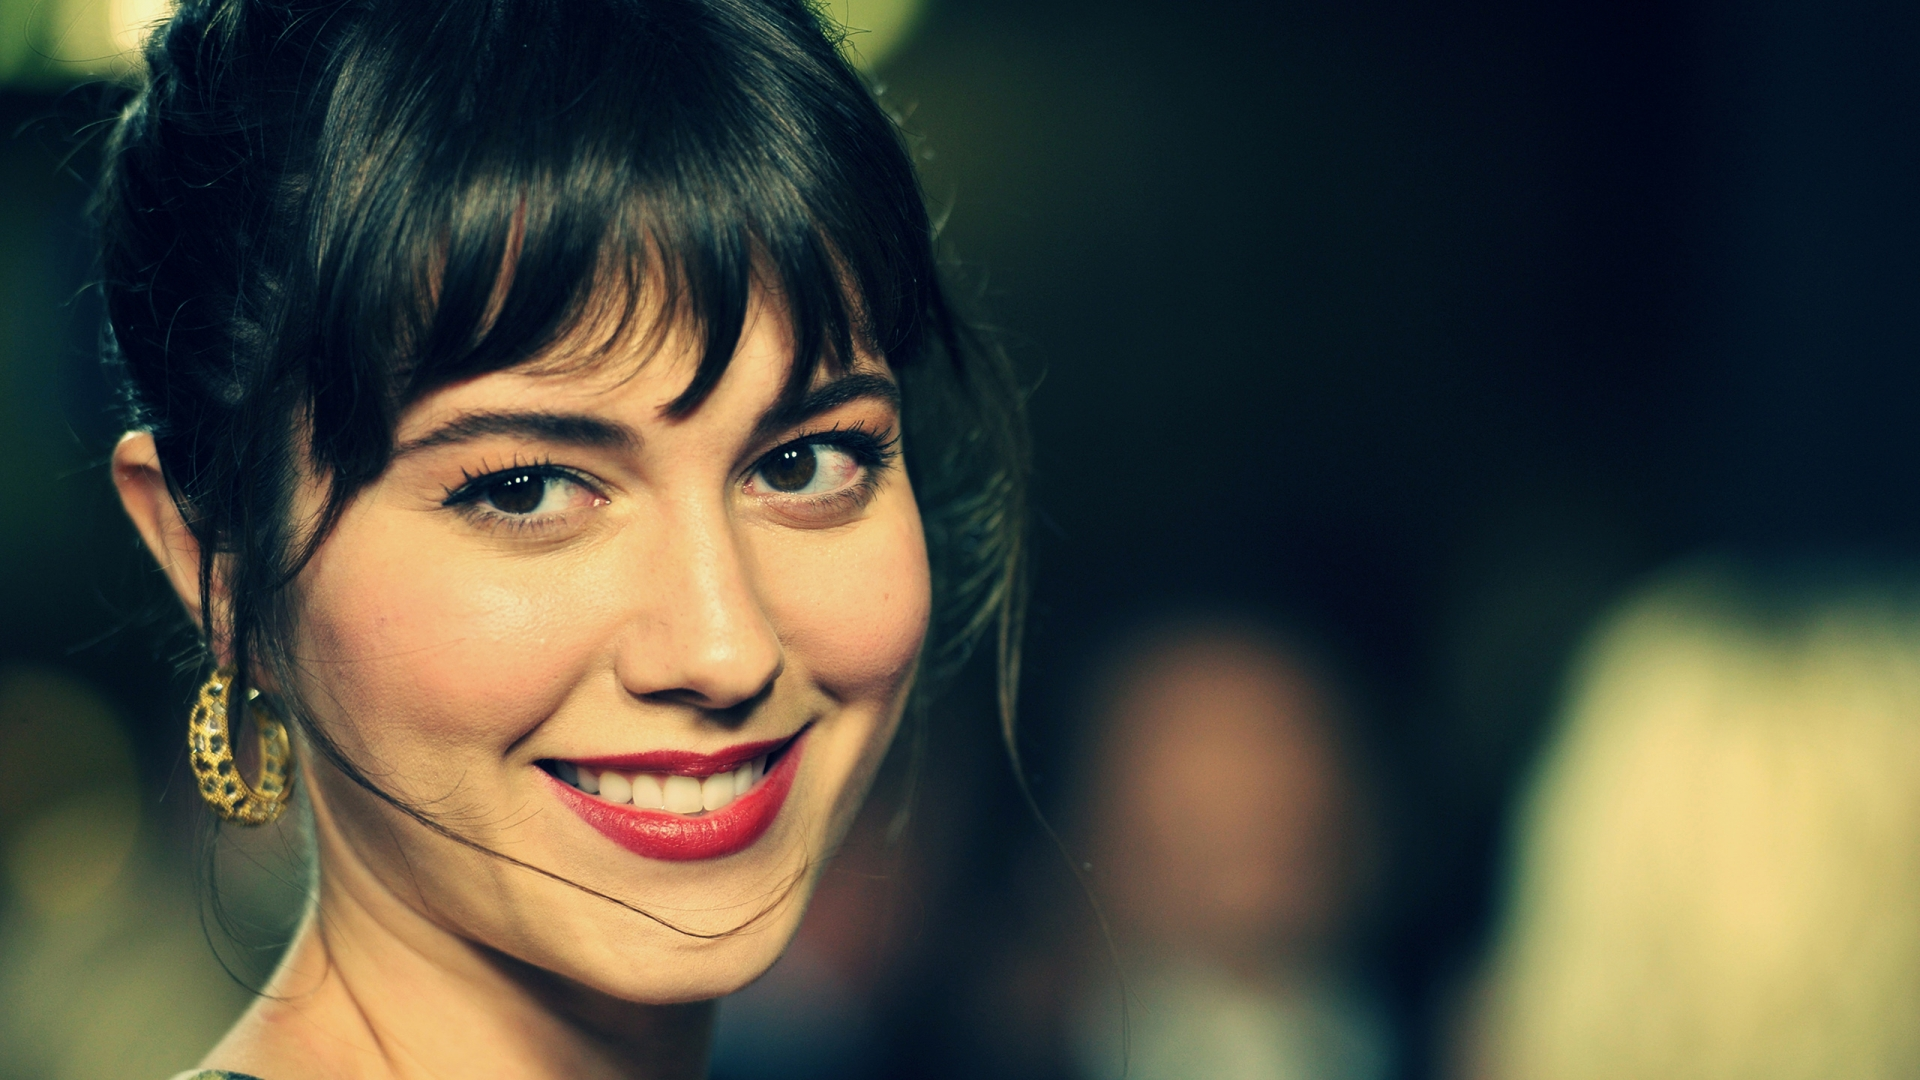 mary elizabeth winstead high definition wallpapers hd